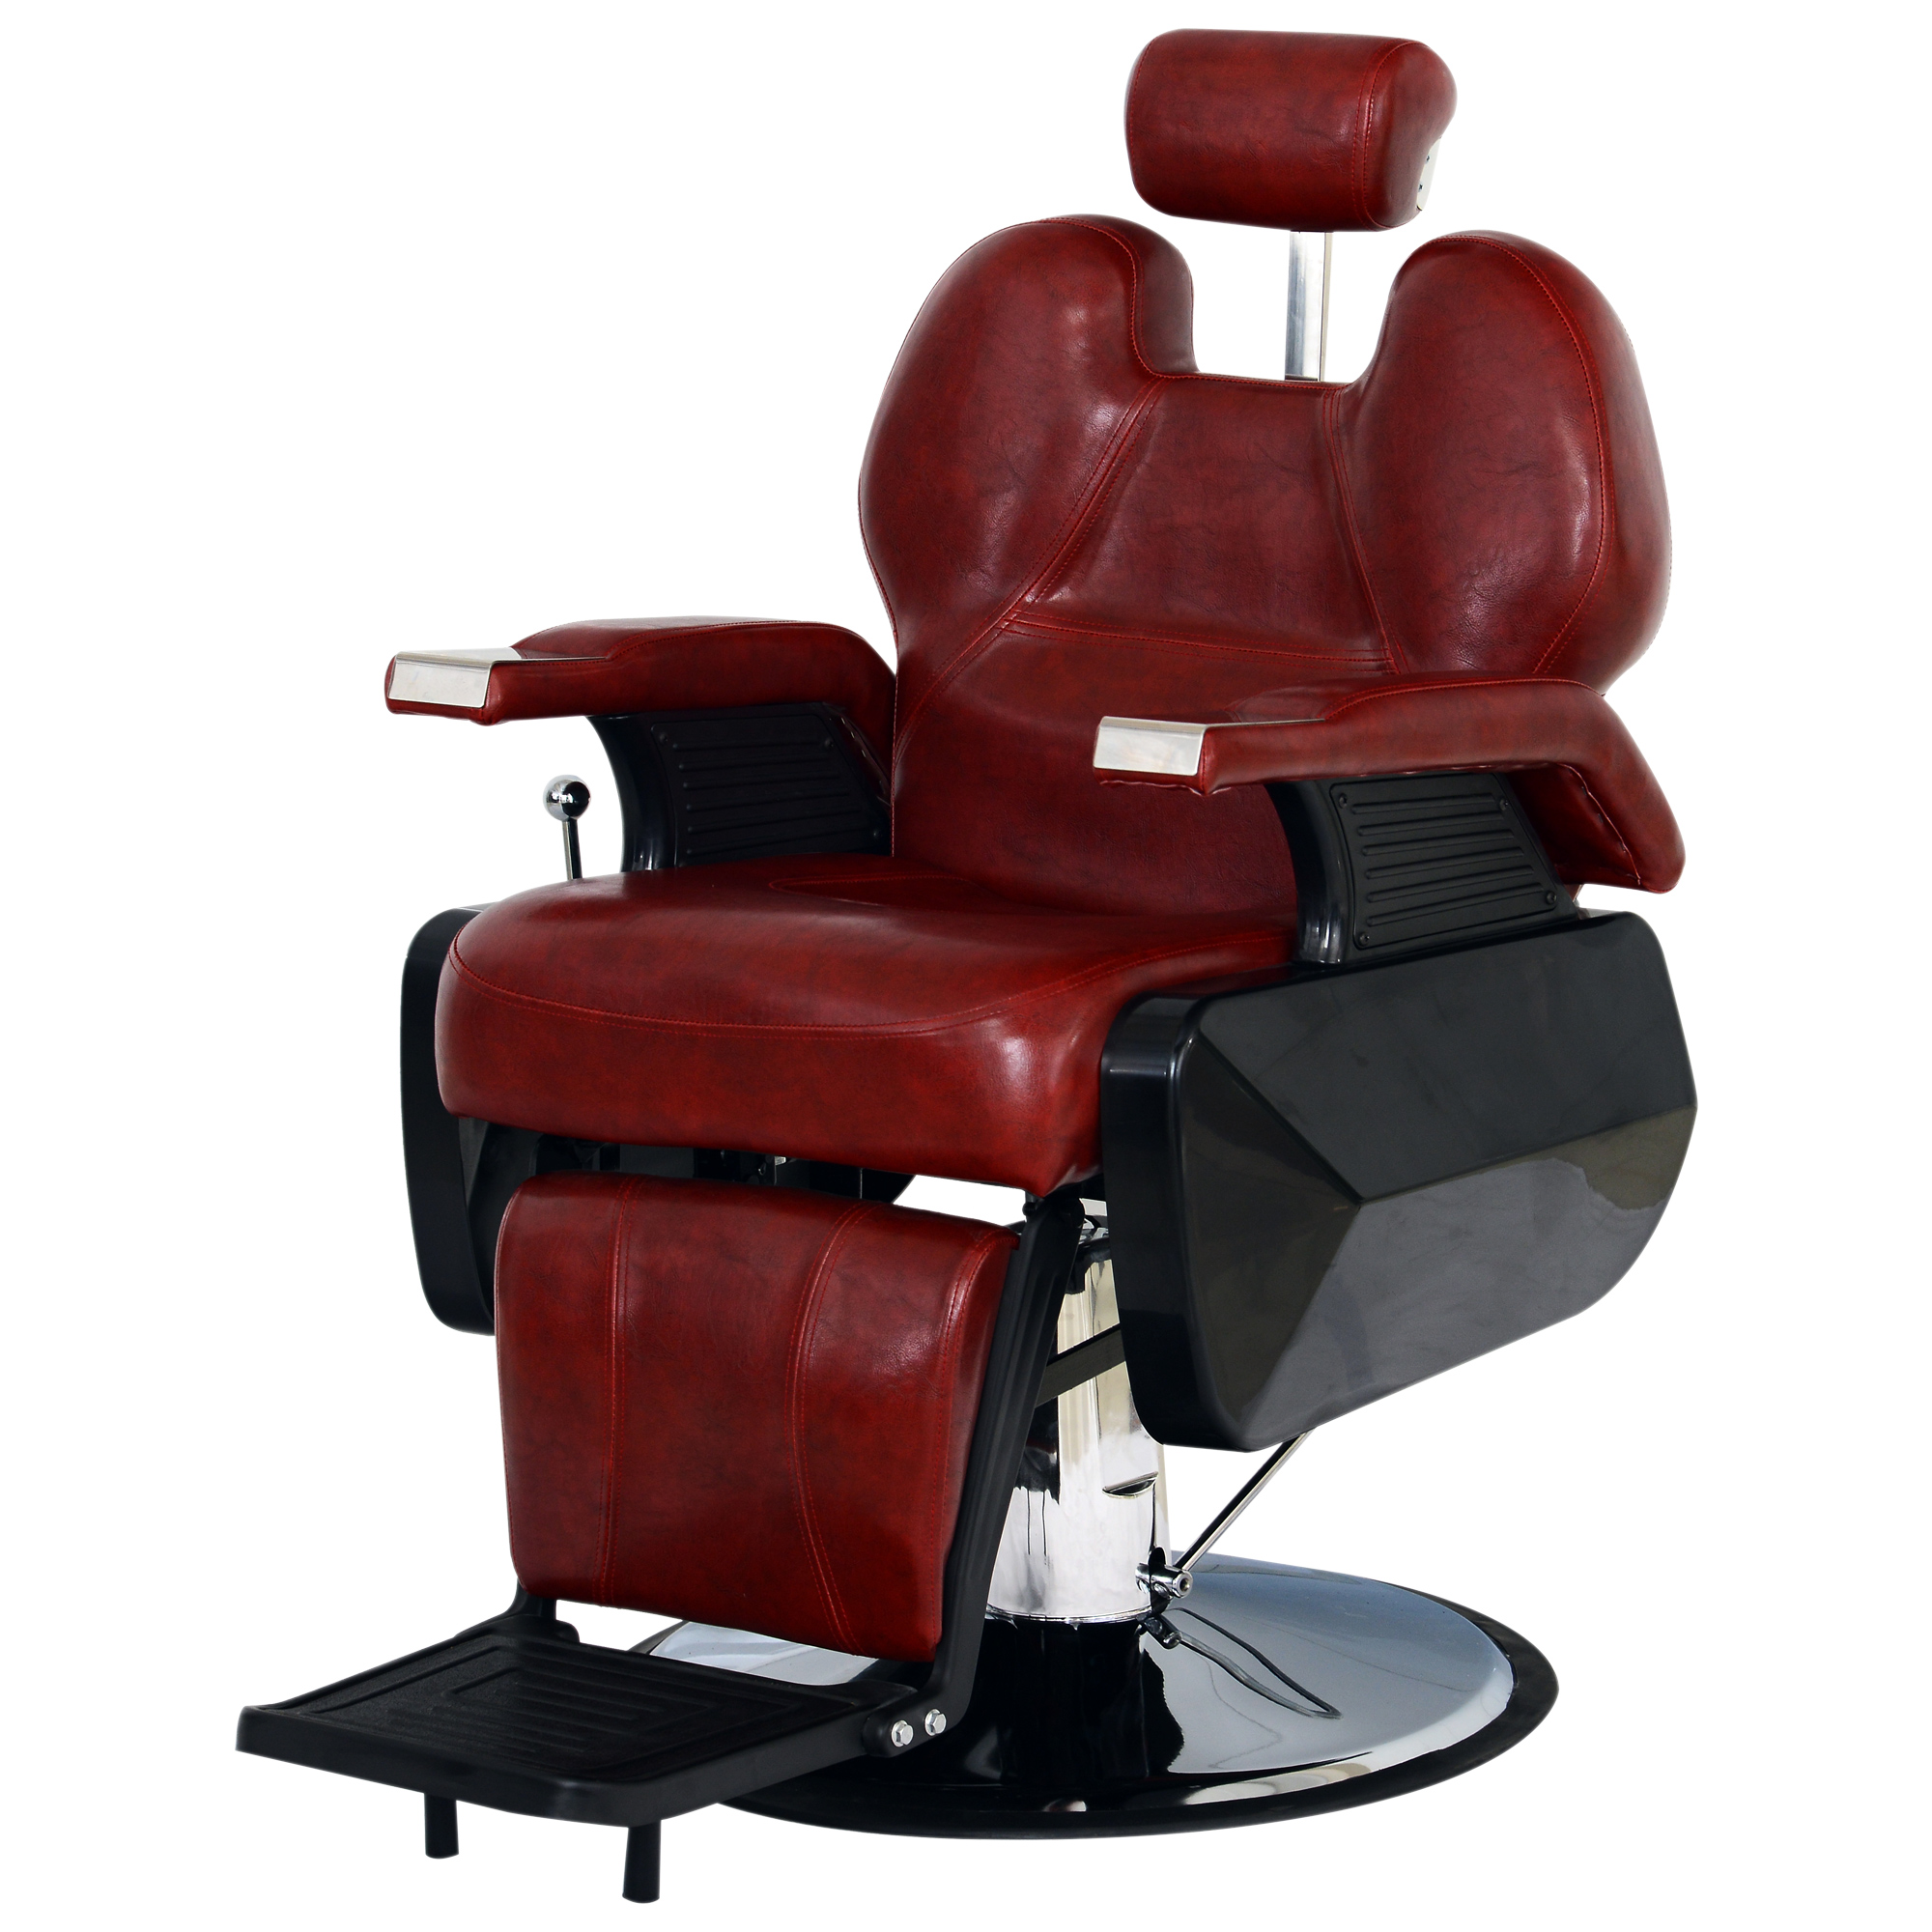 Red Barber Chair Barberpub All Purpose Hydraulic Recline Salon Beauty Spa Styling Barber Chair Burgundy